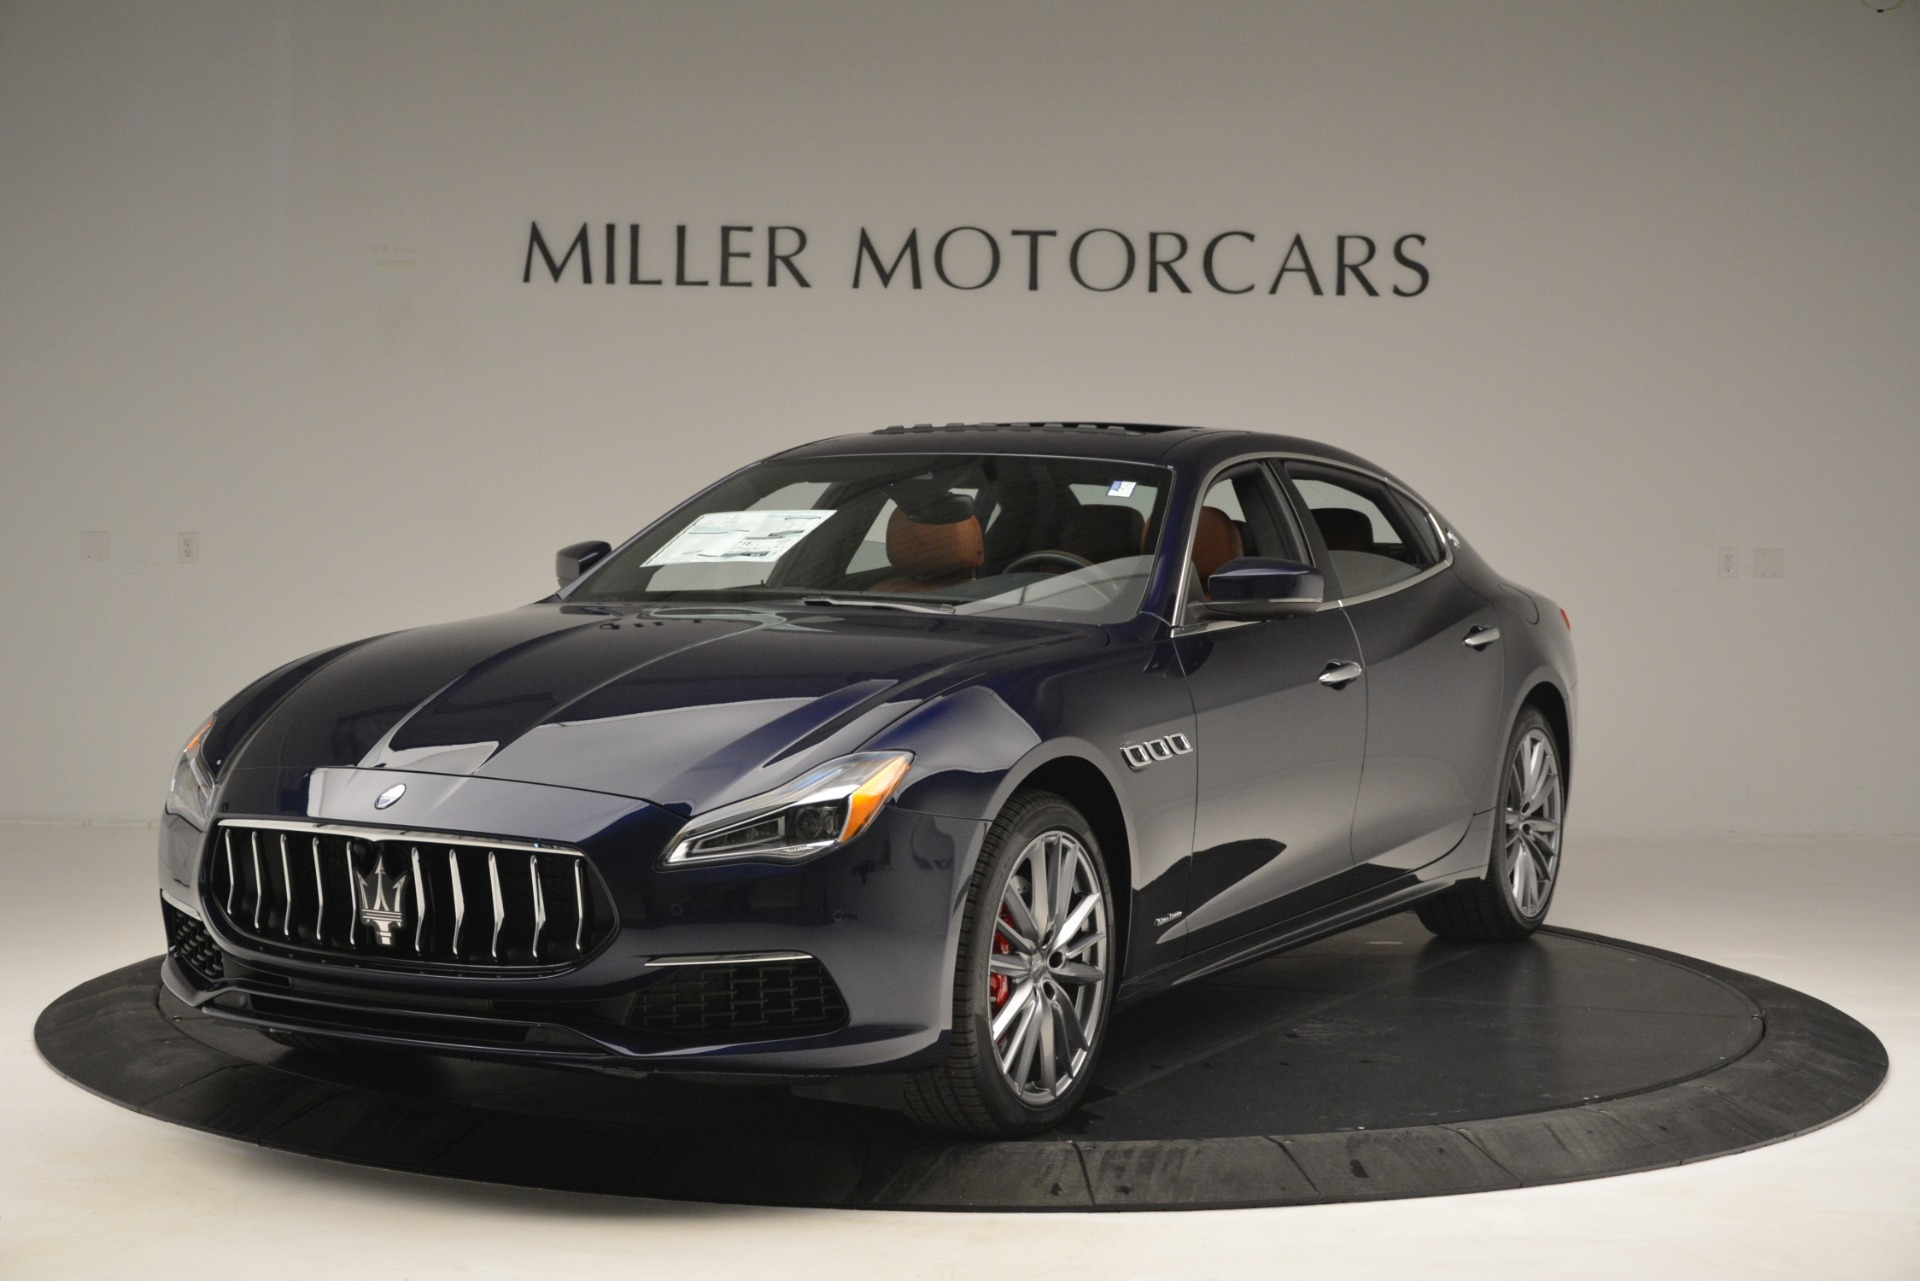 New 2019 Maserati Quattroporte S Q4 GranLusso for sale Sold at Rolls-Royce Motor Cars Greenwich in Greenwich CT 06830 1